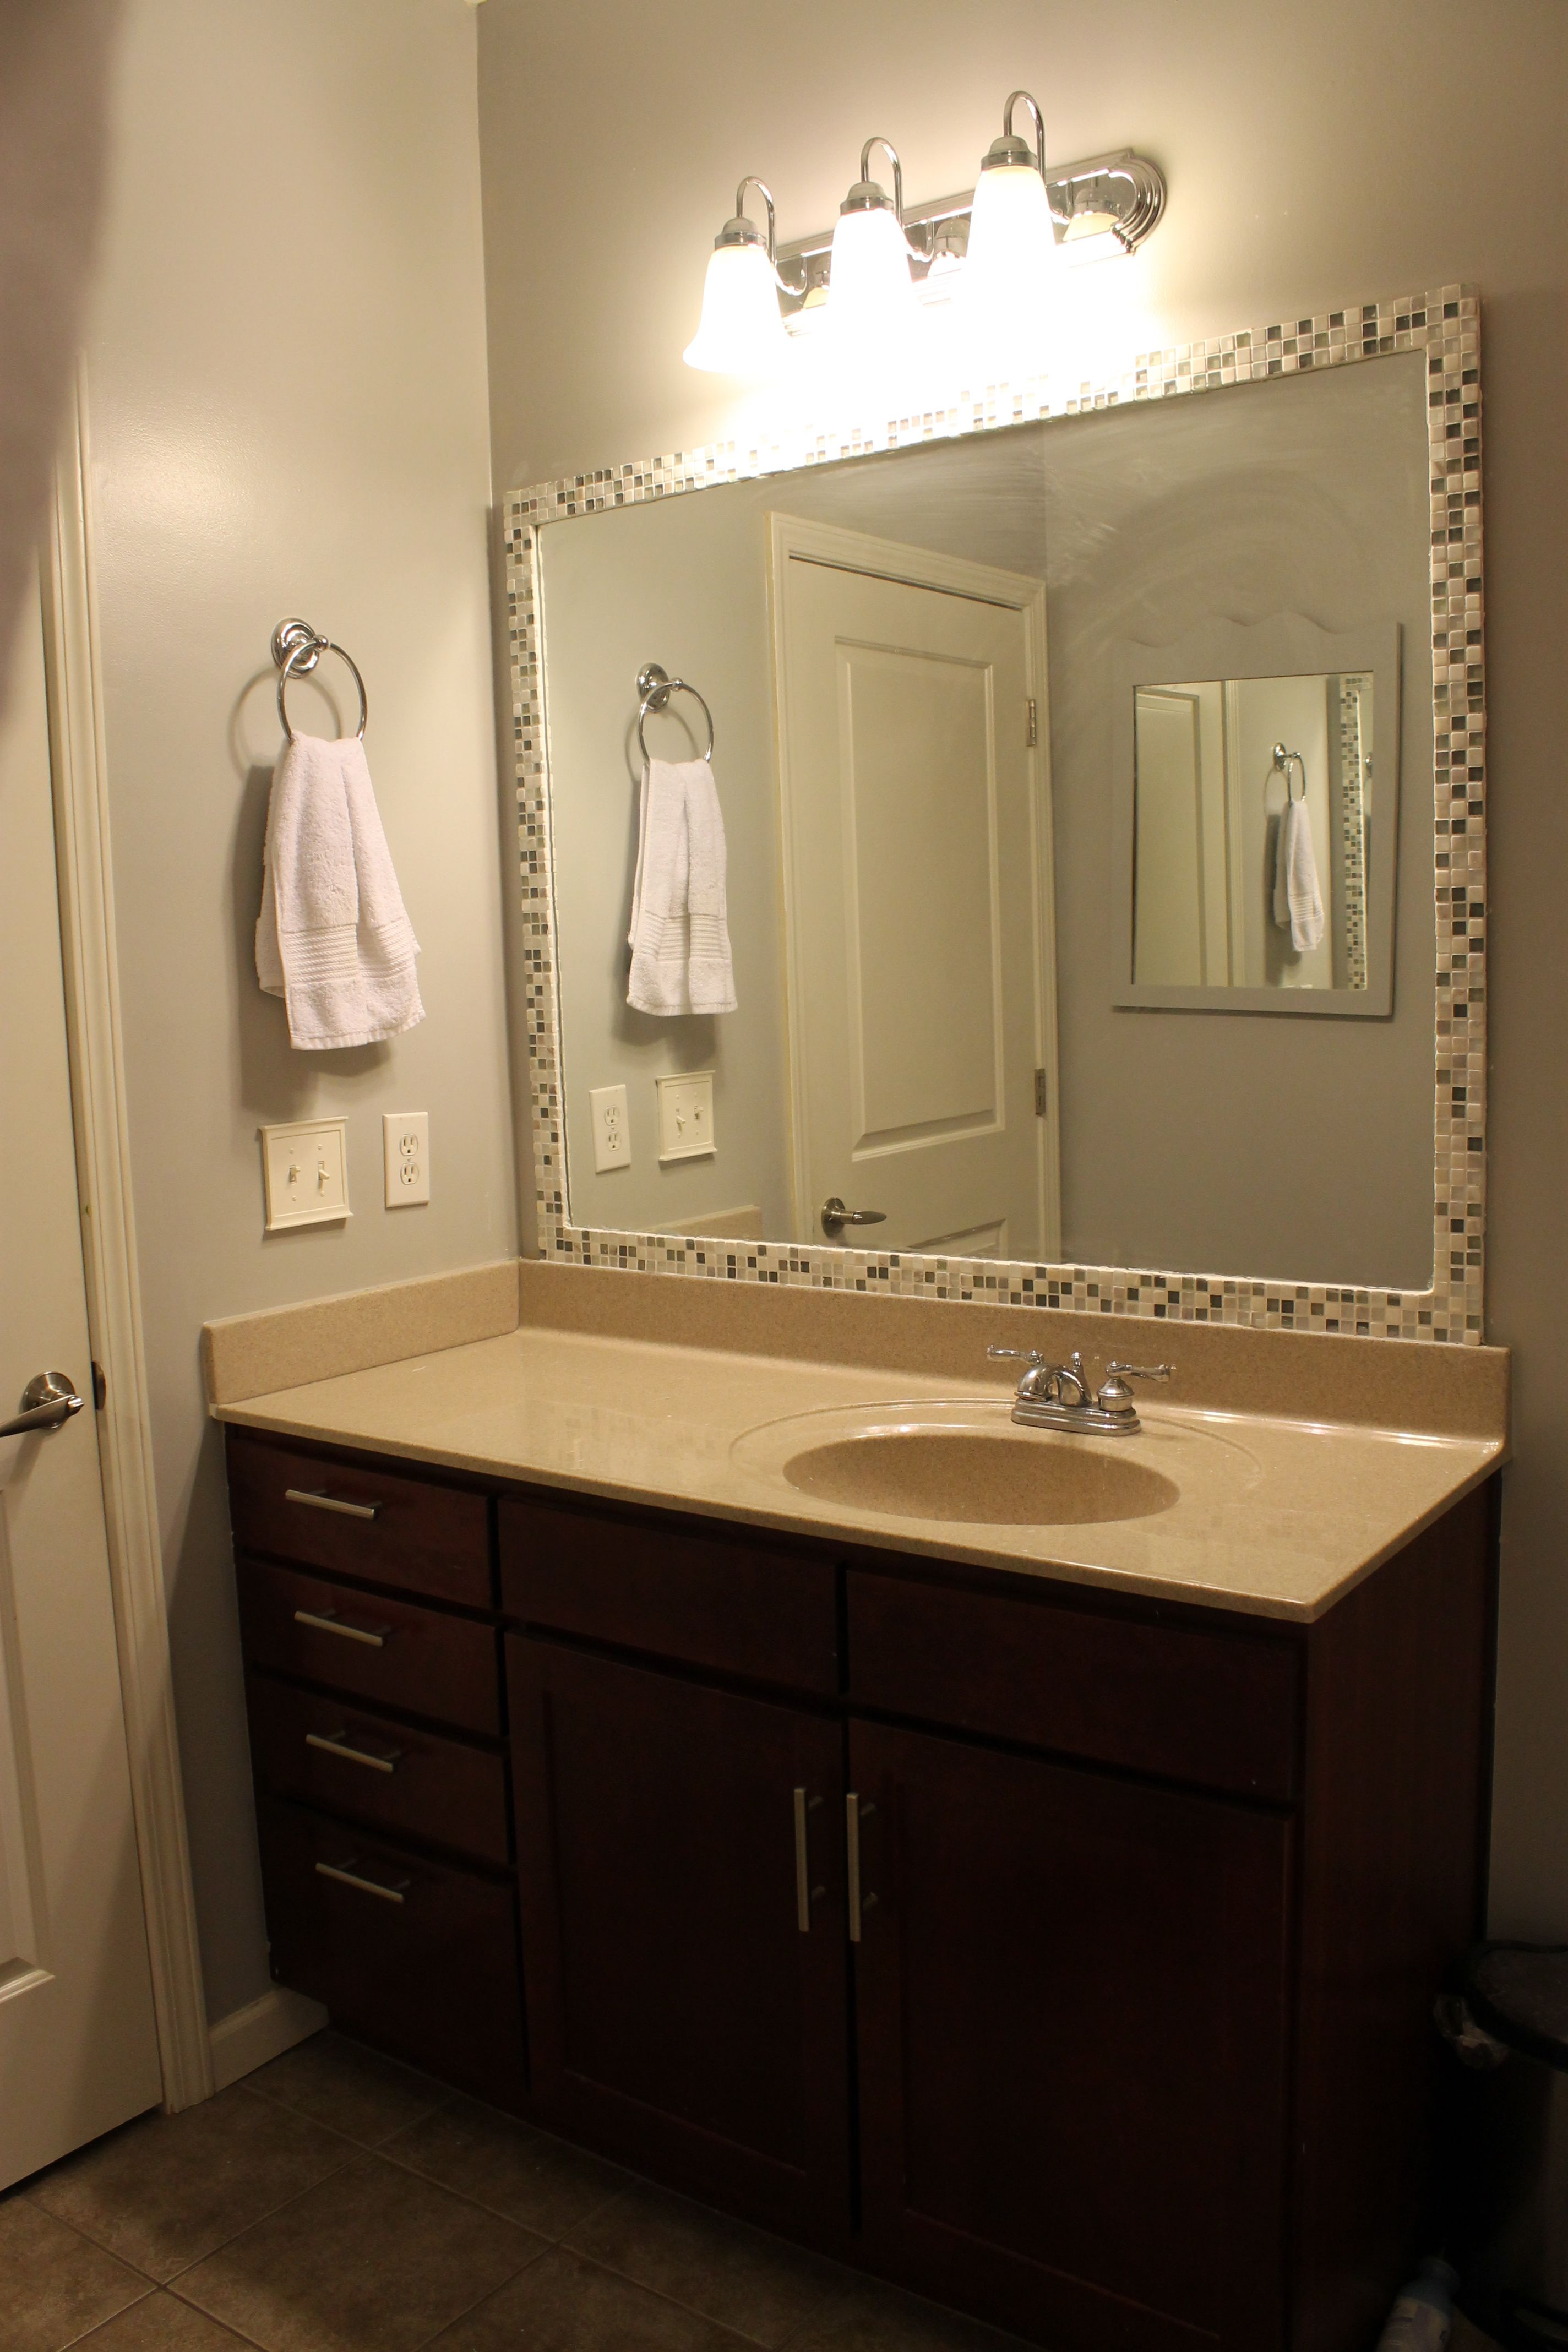 How To Frame A Mirror With Tile Bathroom Mirrors Diy Bathroom Mirror Frame Bathroom Mirror Makeover